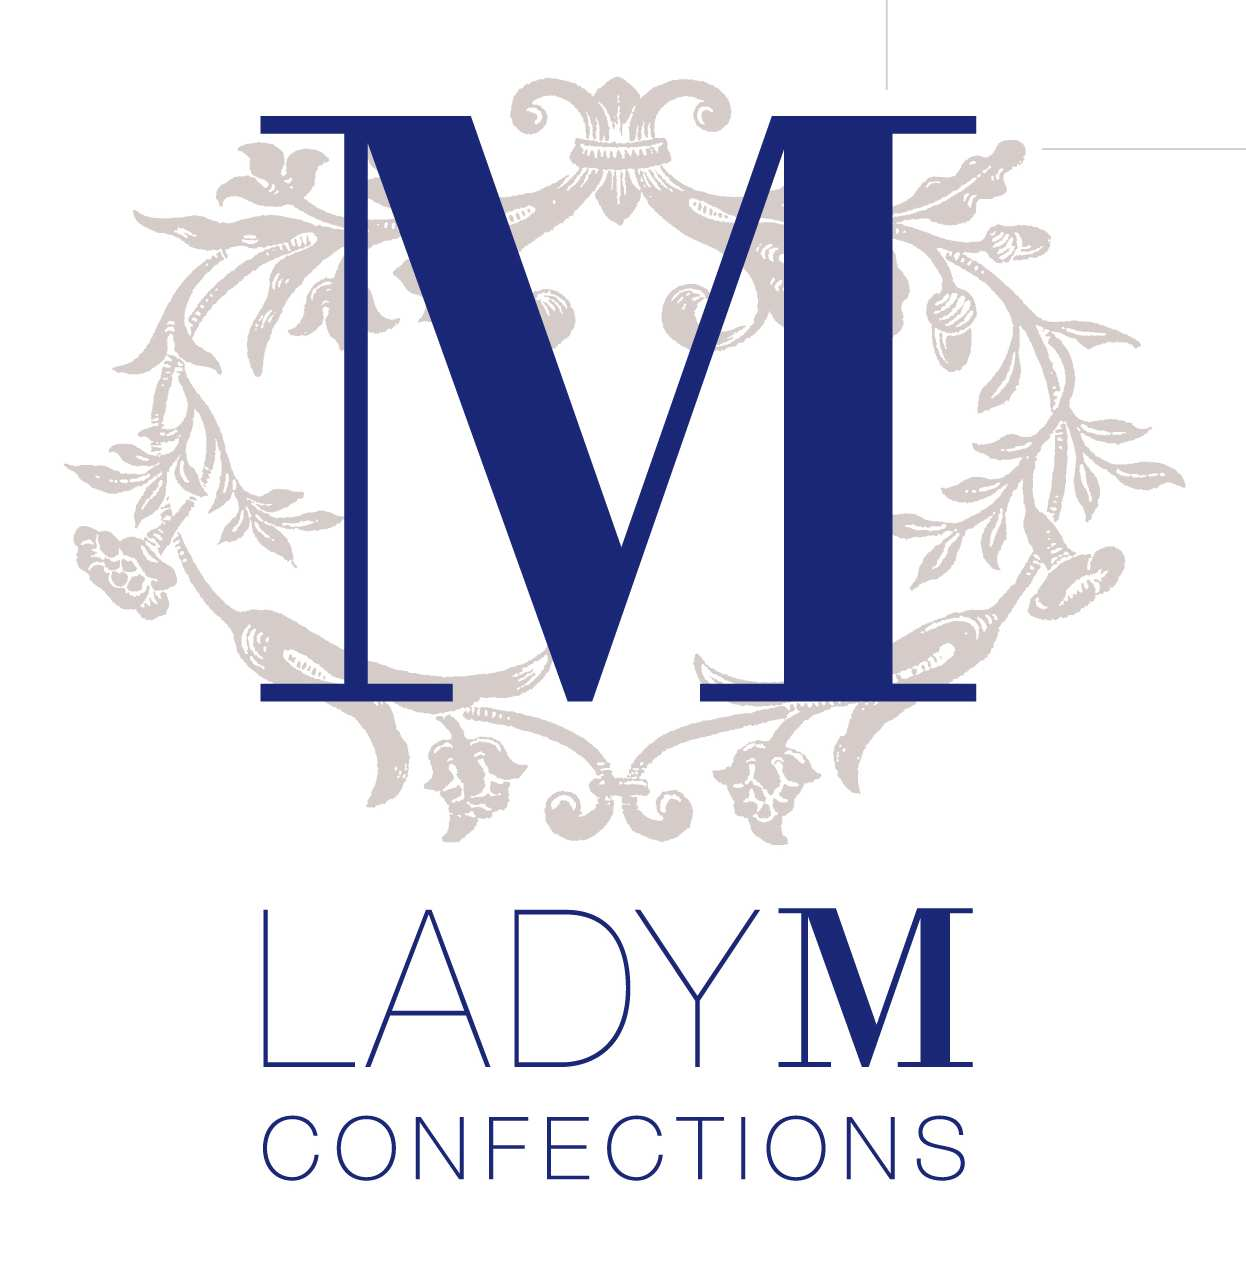 Lady M Cake Shop Hong Kong